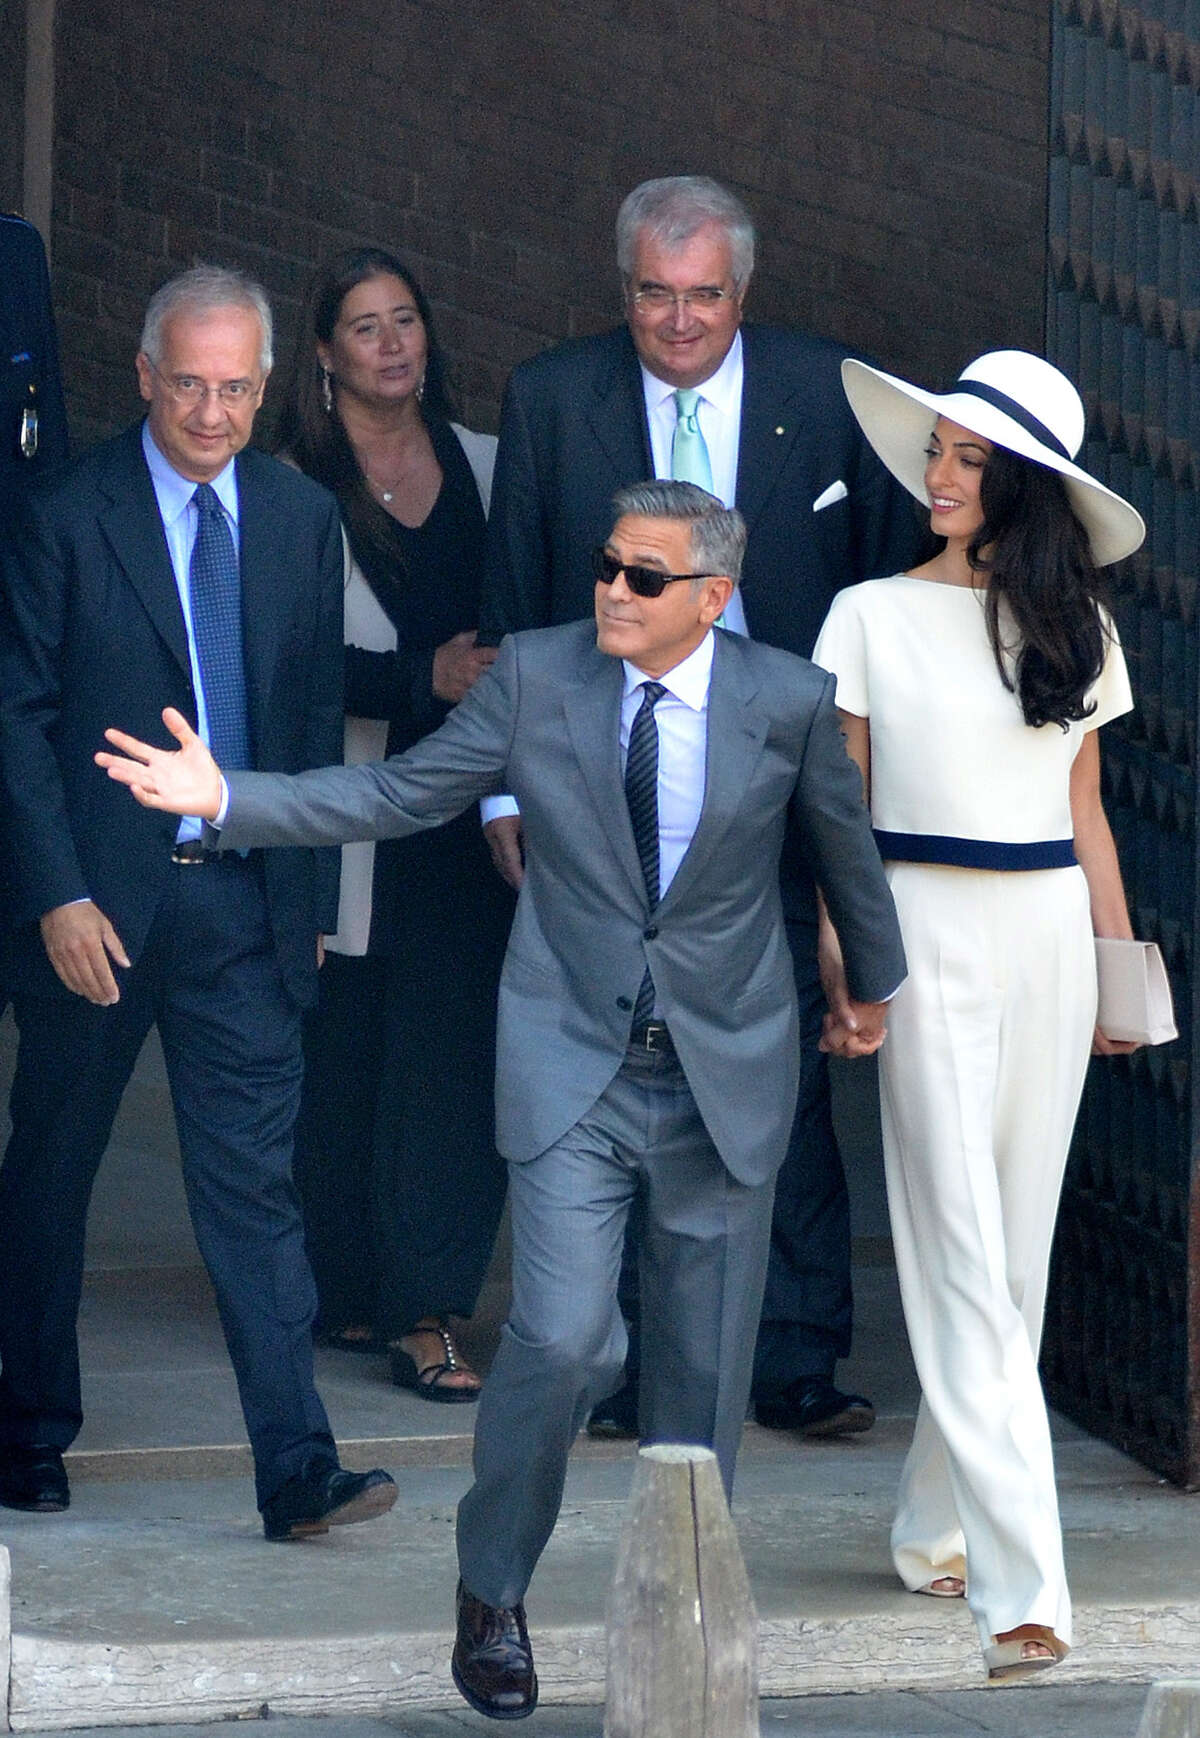 George Clooney and his wife Amal Alamuddin leave the city hall after their civil marriage ceremony Monday performed by former Rome's mayor Walter Veltroni, left, in Venice, Italy.